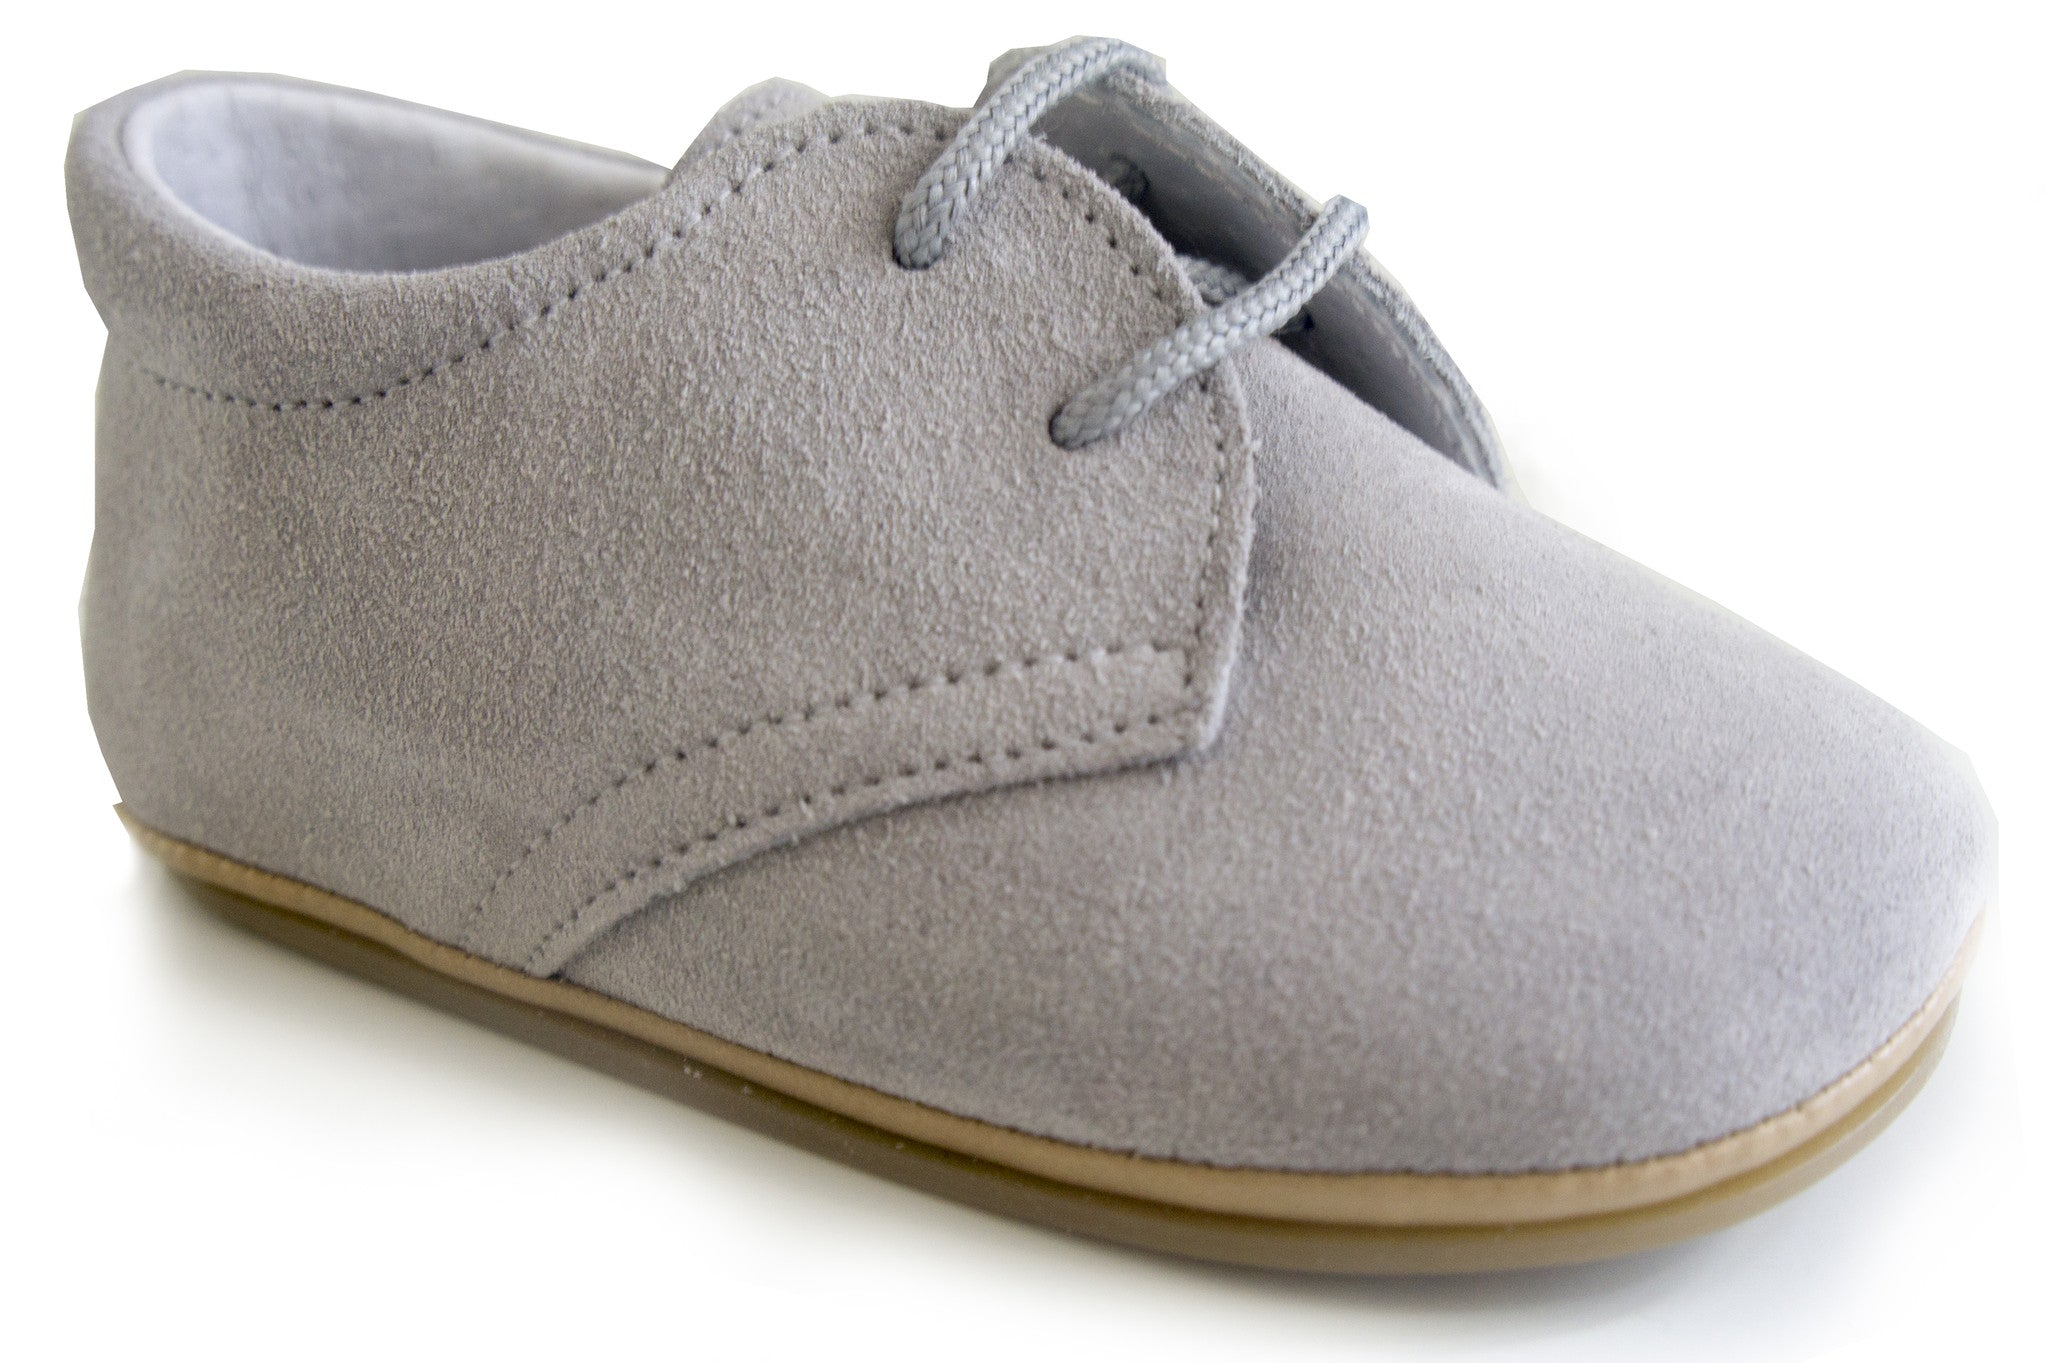 Classic Soft Leather Booties Unisex for Boys and Girls velvet grey by Patucos